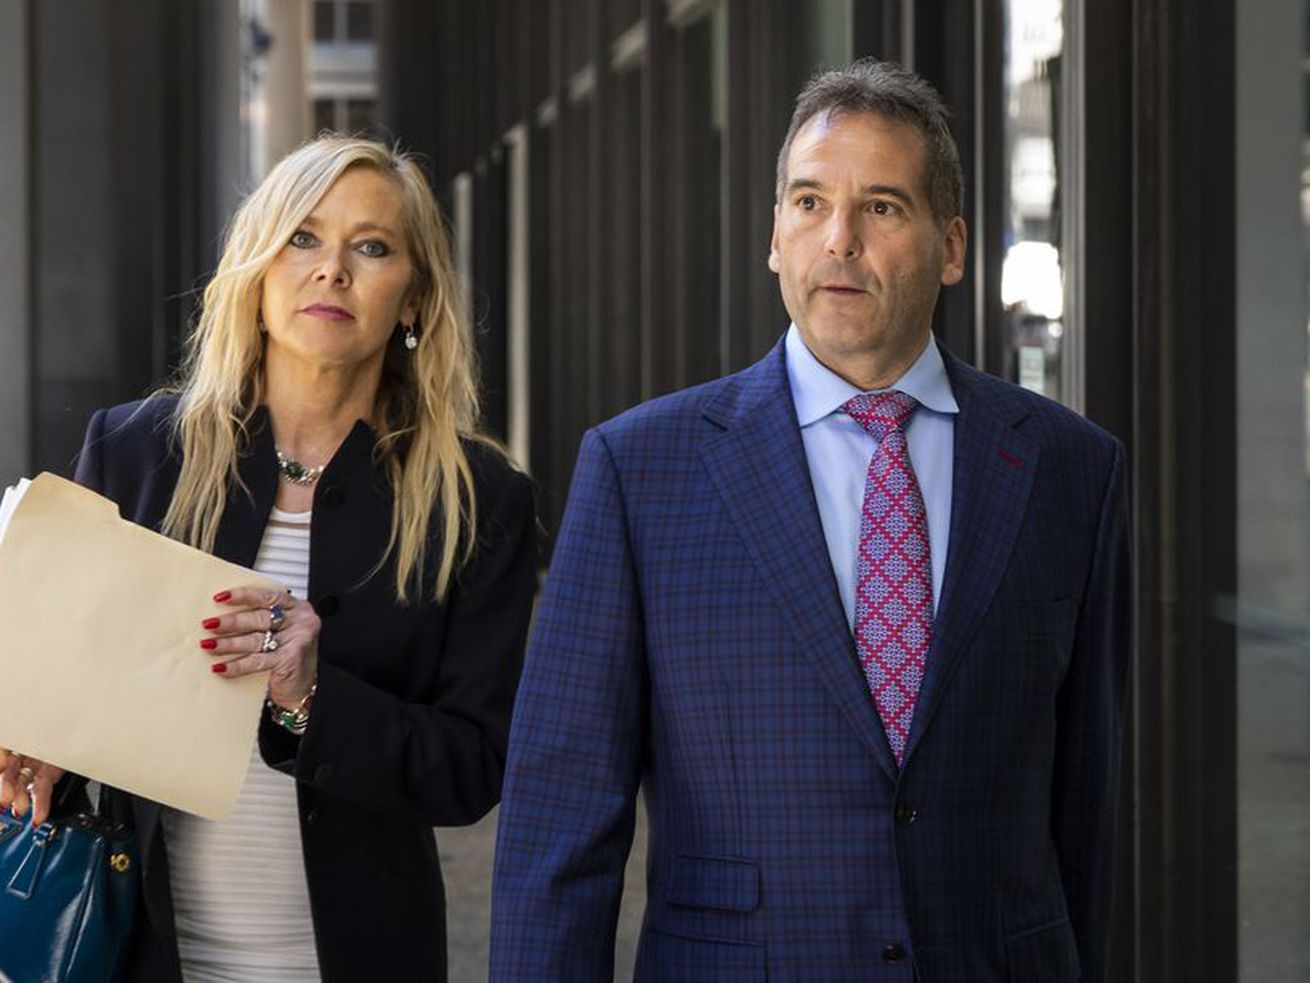 Vincent DelGiudice, right, walks with his attorney, Carolyn Gurland, out of the Dirksen Federal Courthouse in March 2020.